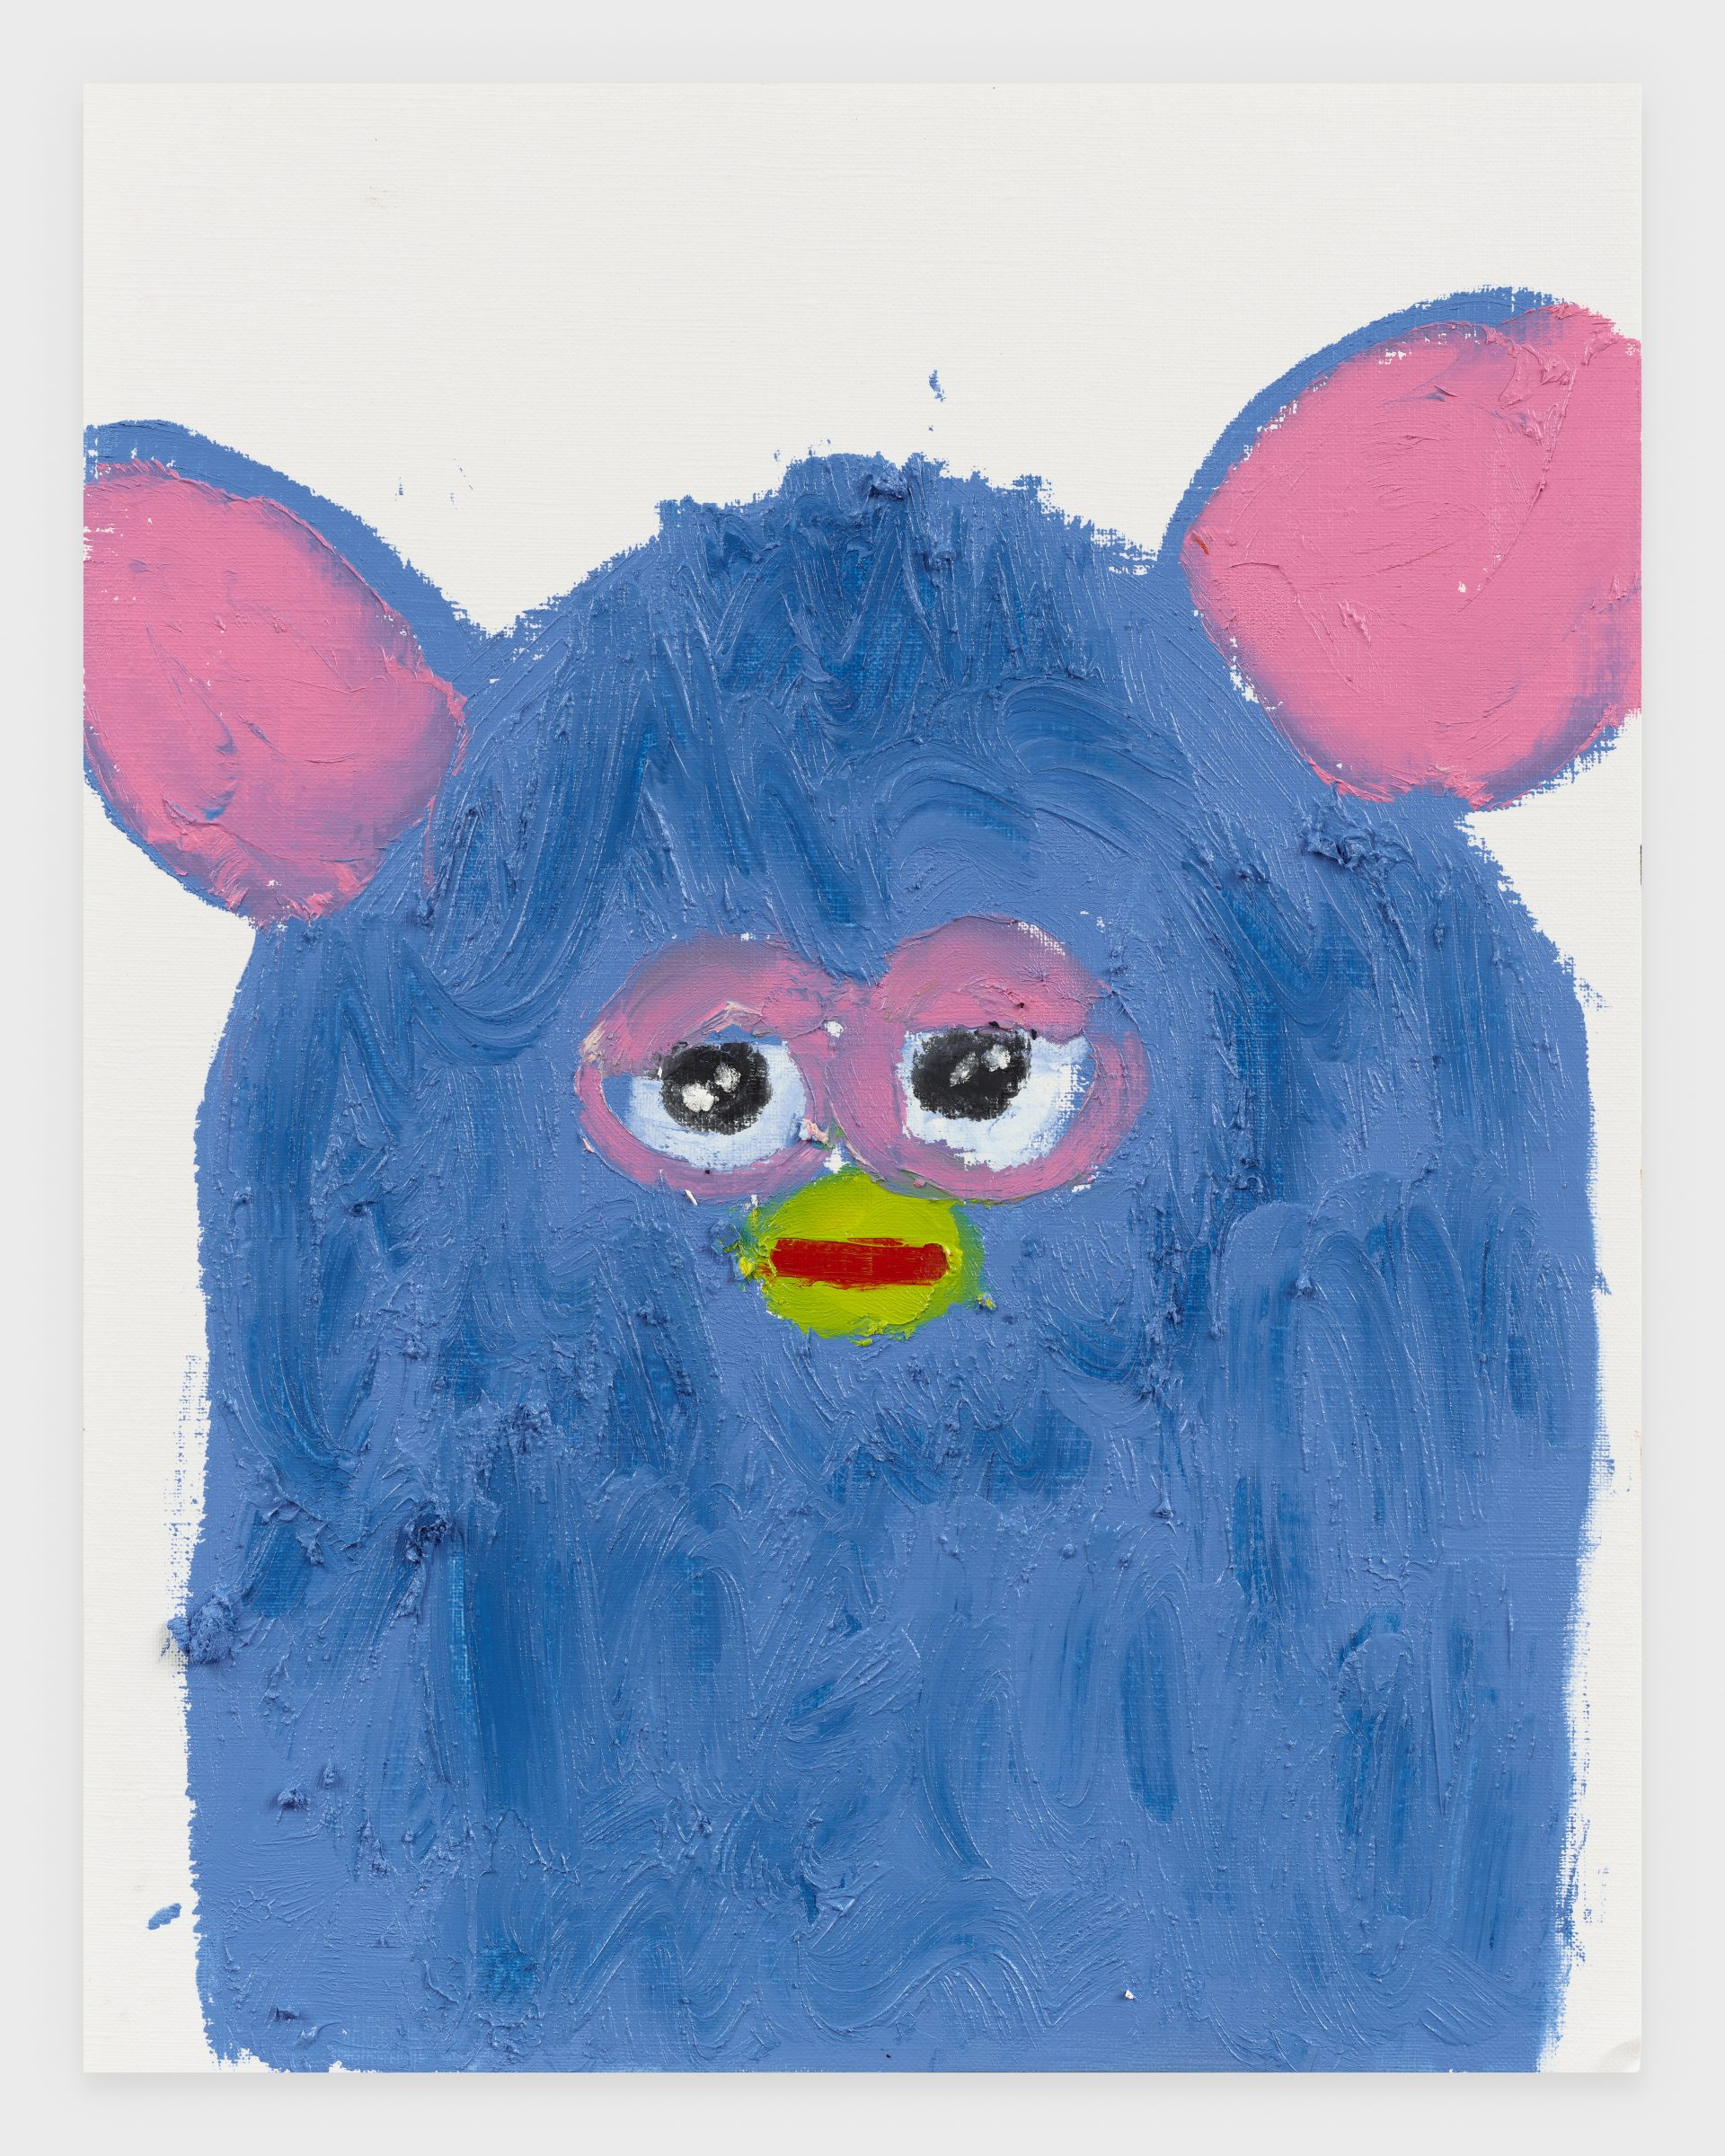 Furby Blue, 2020, Oil stick on archival paper, 11 x 14 inches